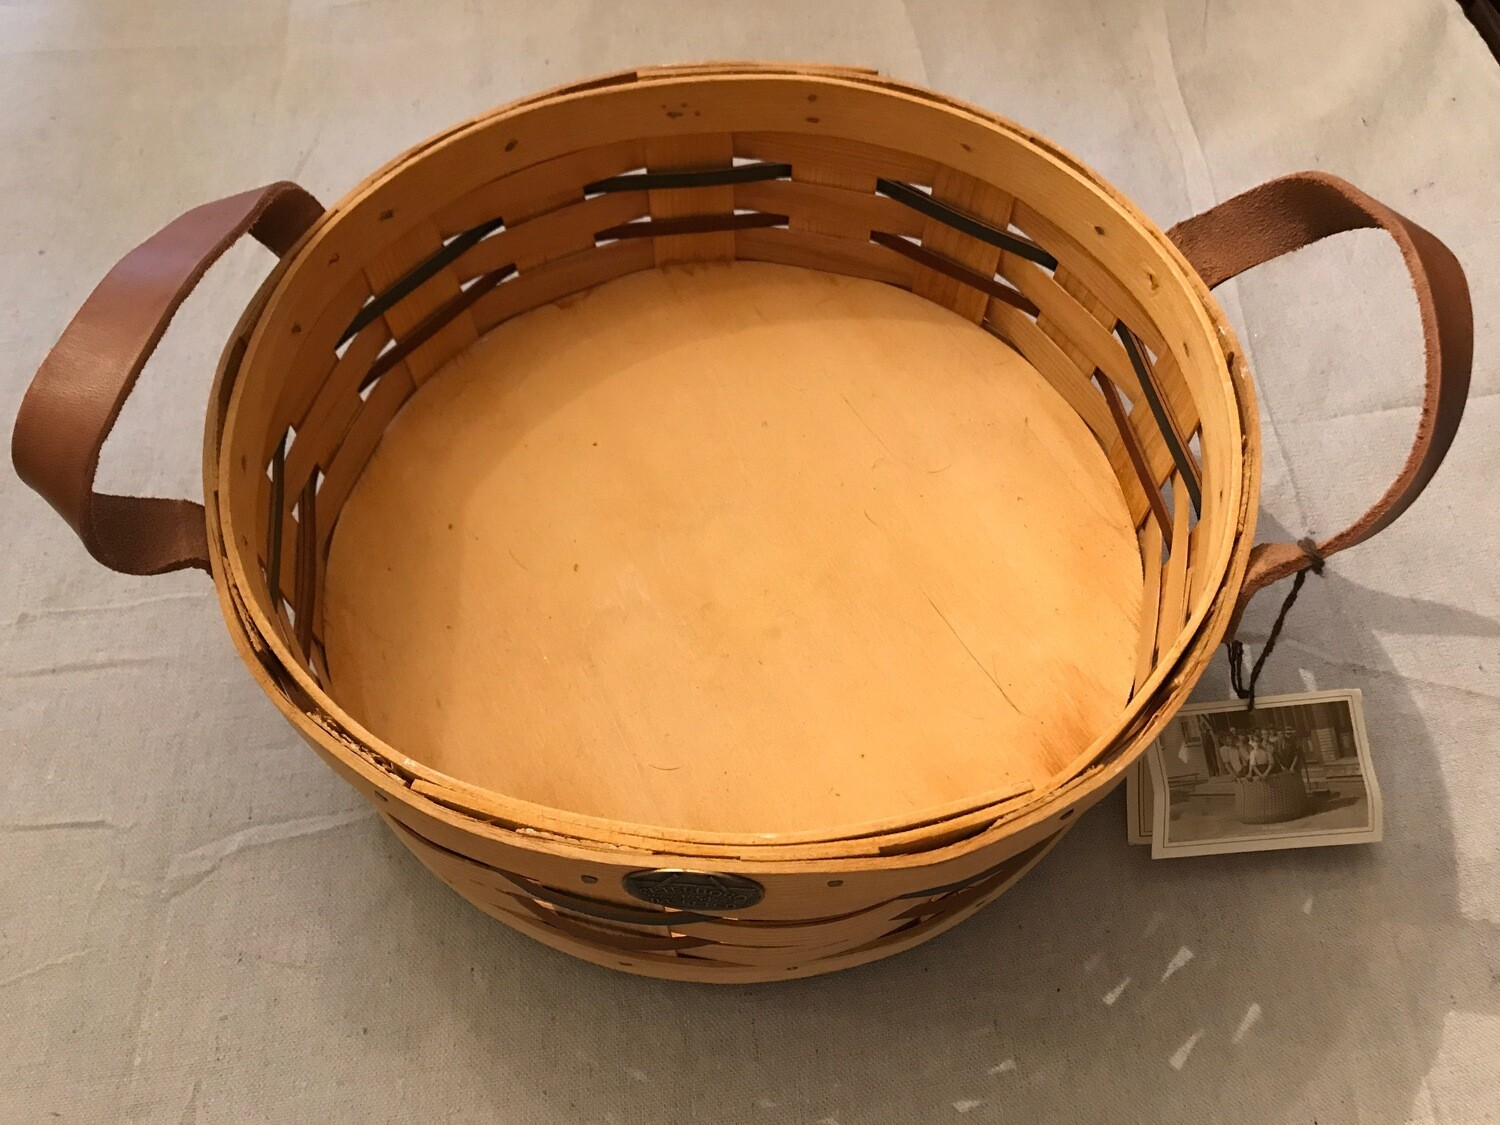 Peterboro Basket Co Lazy Susan Basket with Leather Handles